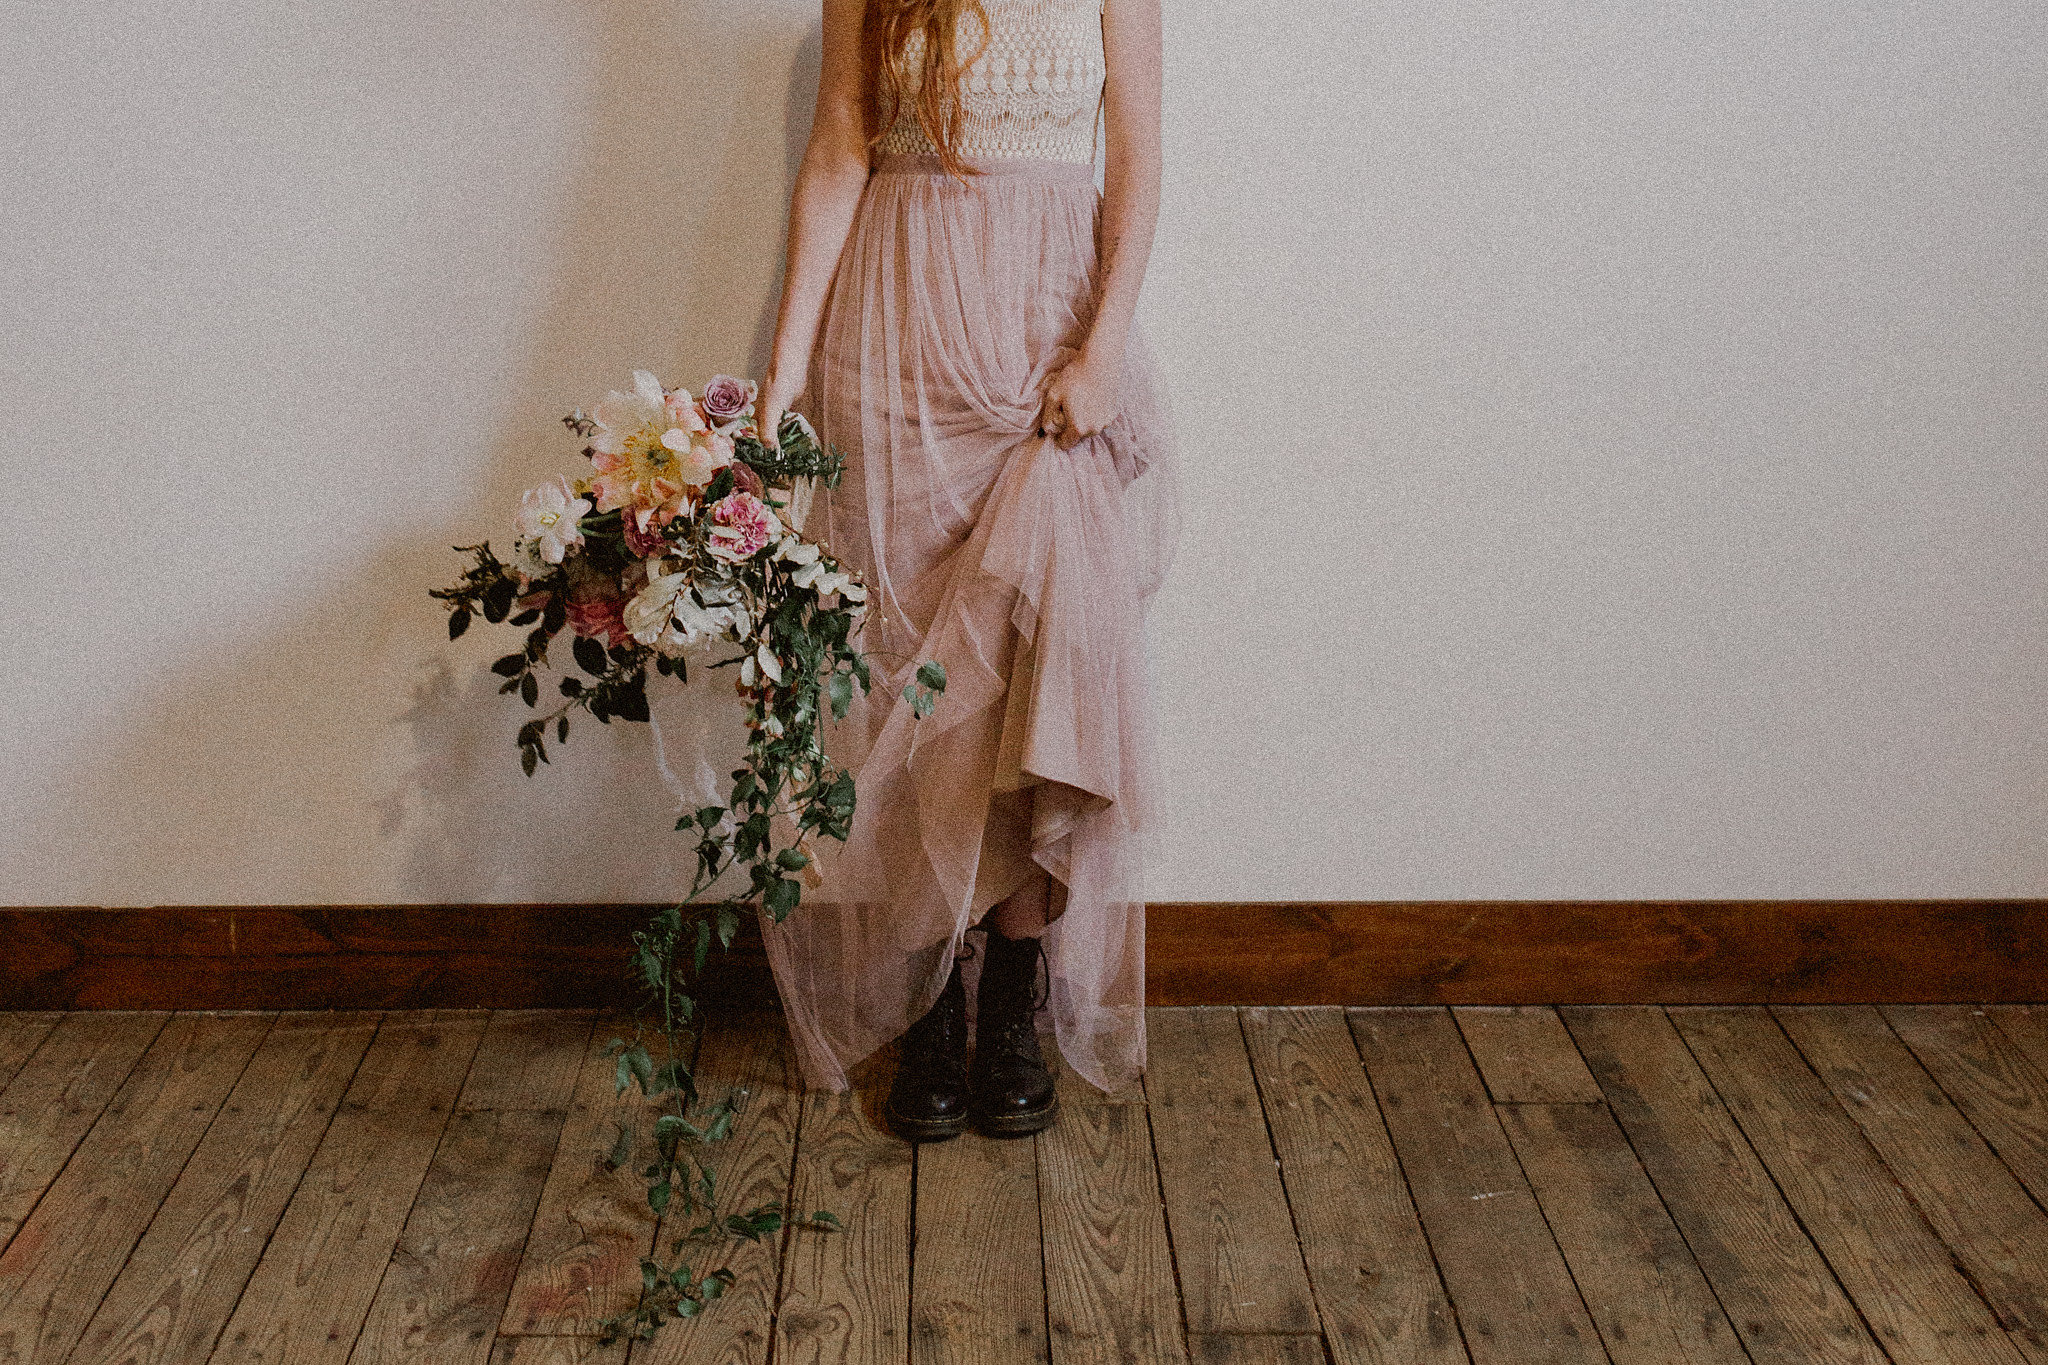 Rock n Roll Bride Black Combat Boots  | College Station hair + makeup artist Naturally Flawless | Bryan, Texas | Pink + Purple + Vintage + Romantic + Blush + crochet + two piece wedding dress | Wedding Coordinator Epoch Co+